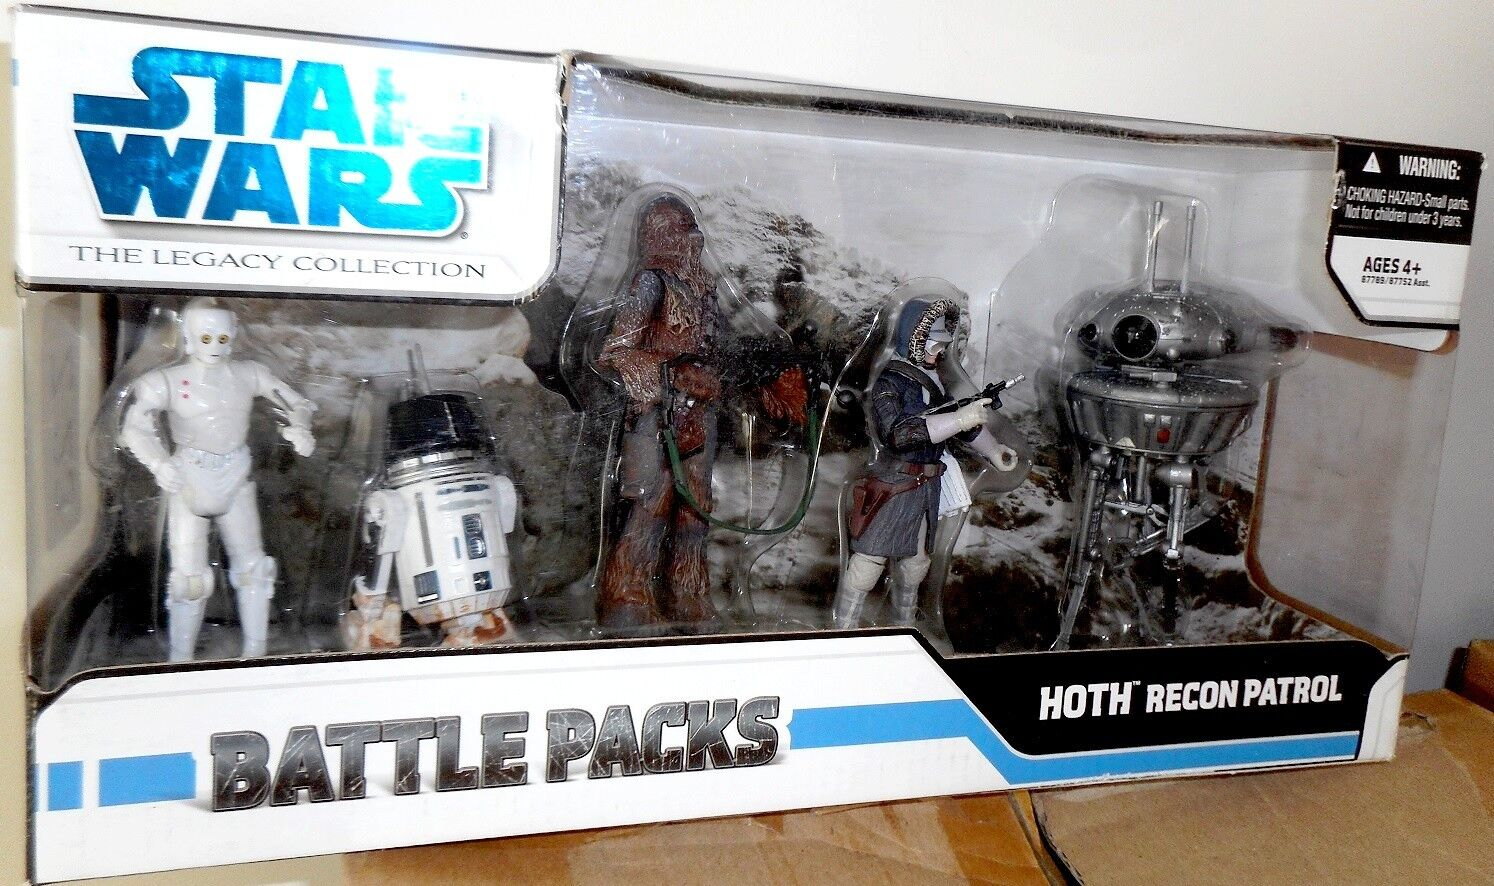 Battle Pack HOTH RECON PATROL K-2PO K-2PO K-2PO R5-M2 Droid The Legacy Collection Star Wars 1f117d